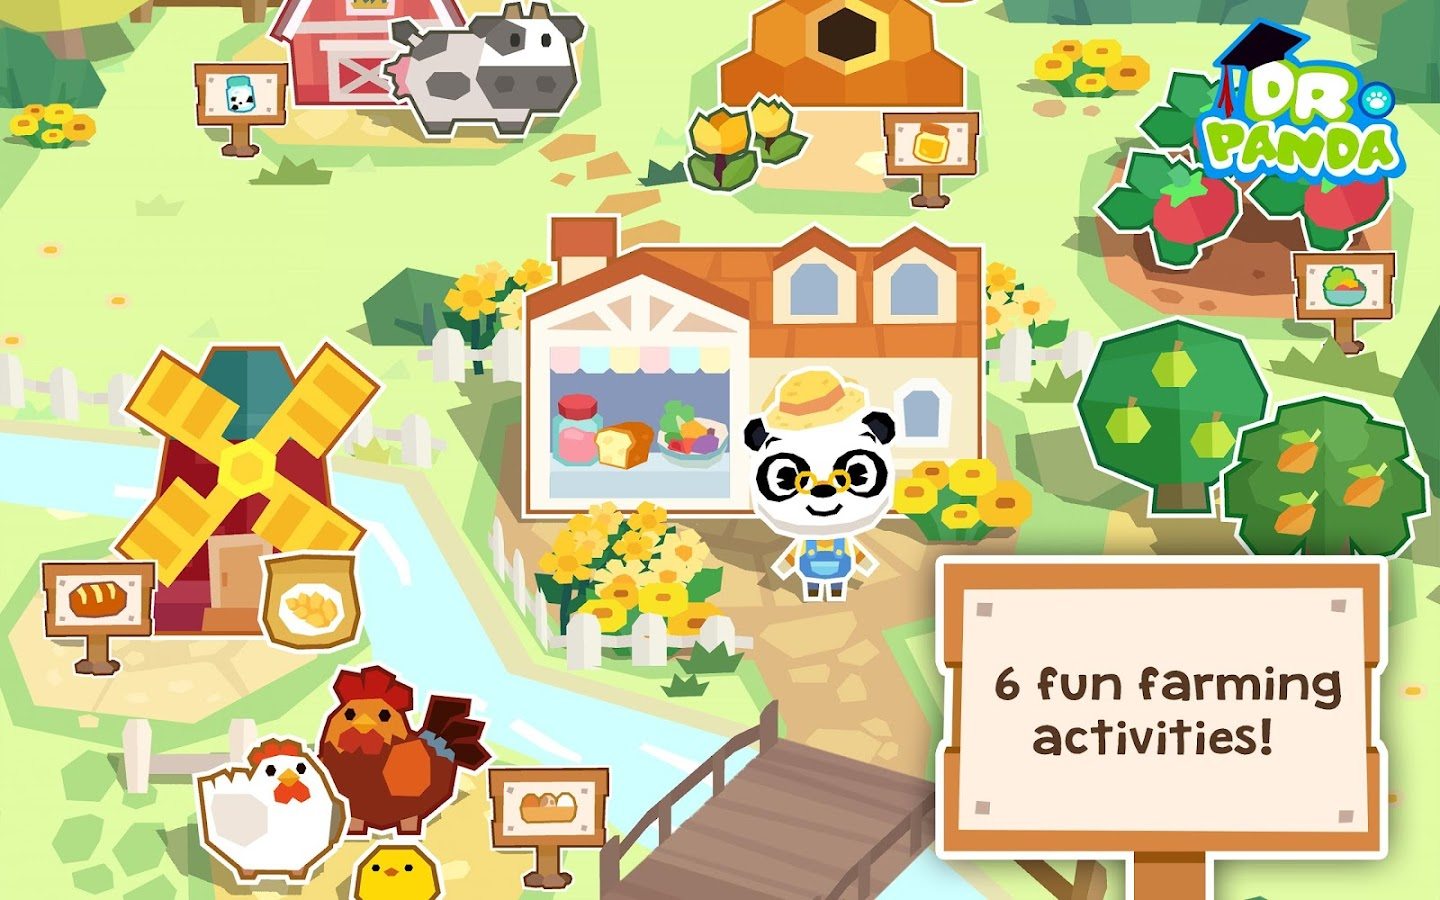 Dr. Panda Farm Screenshot 0